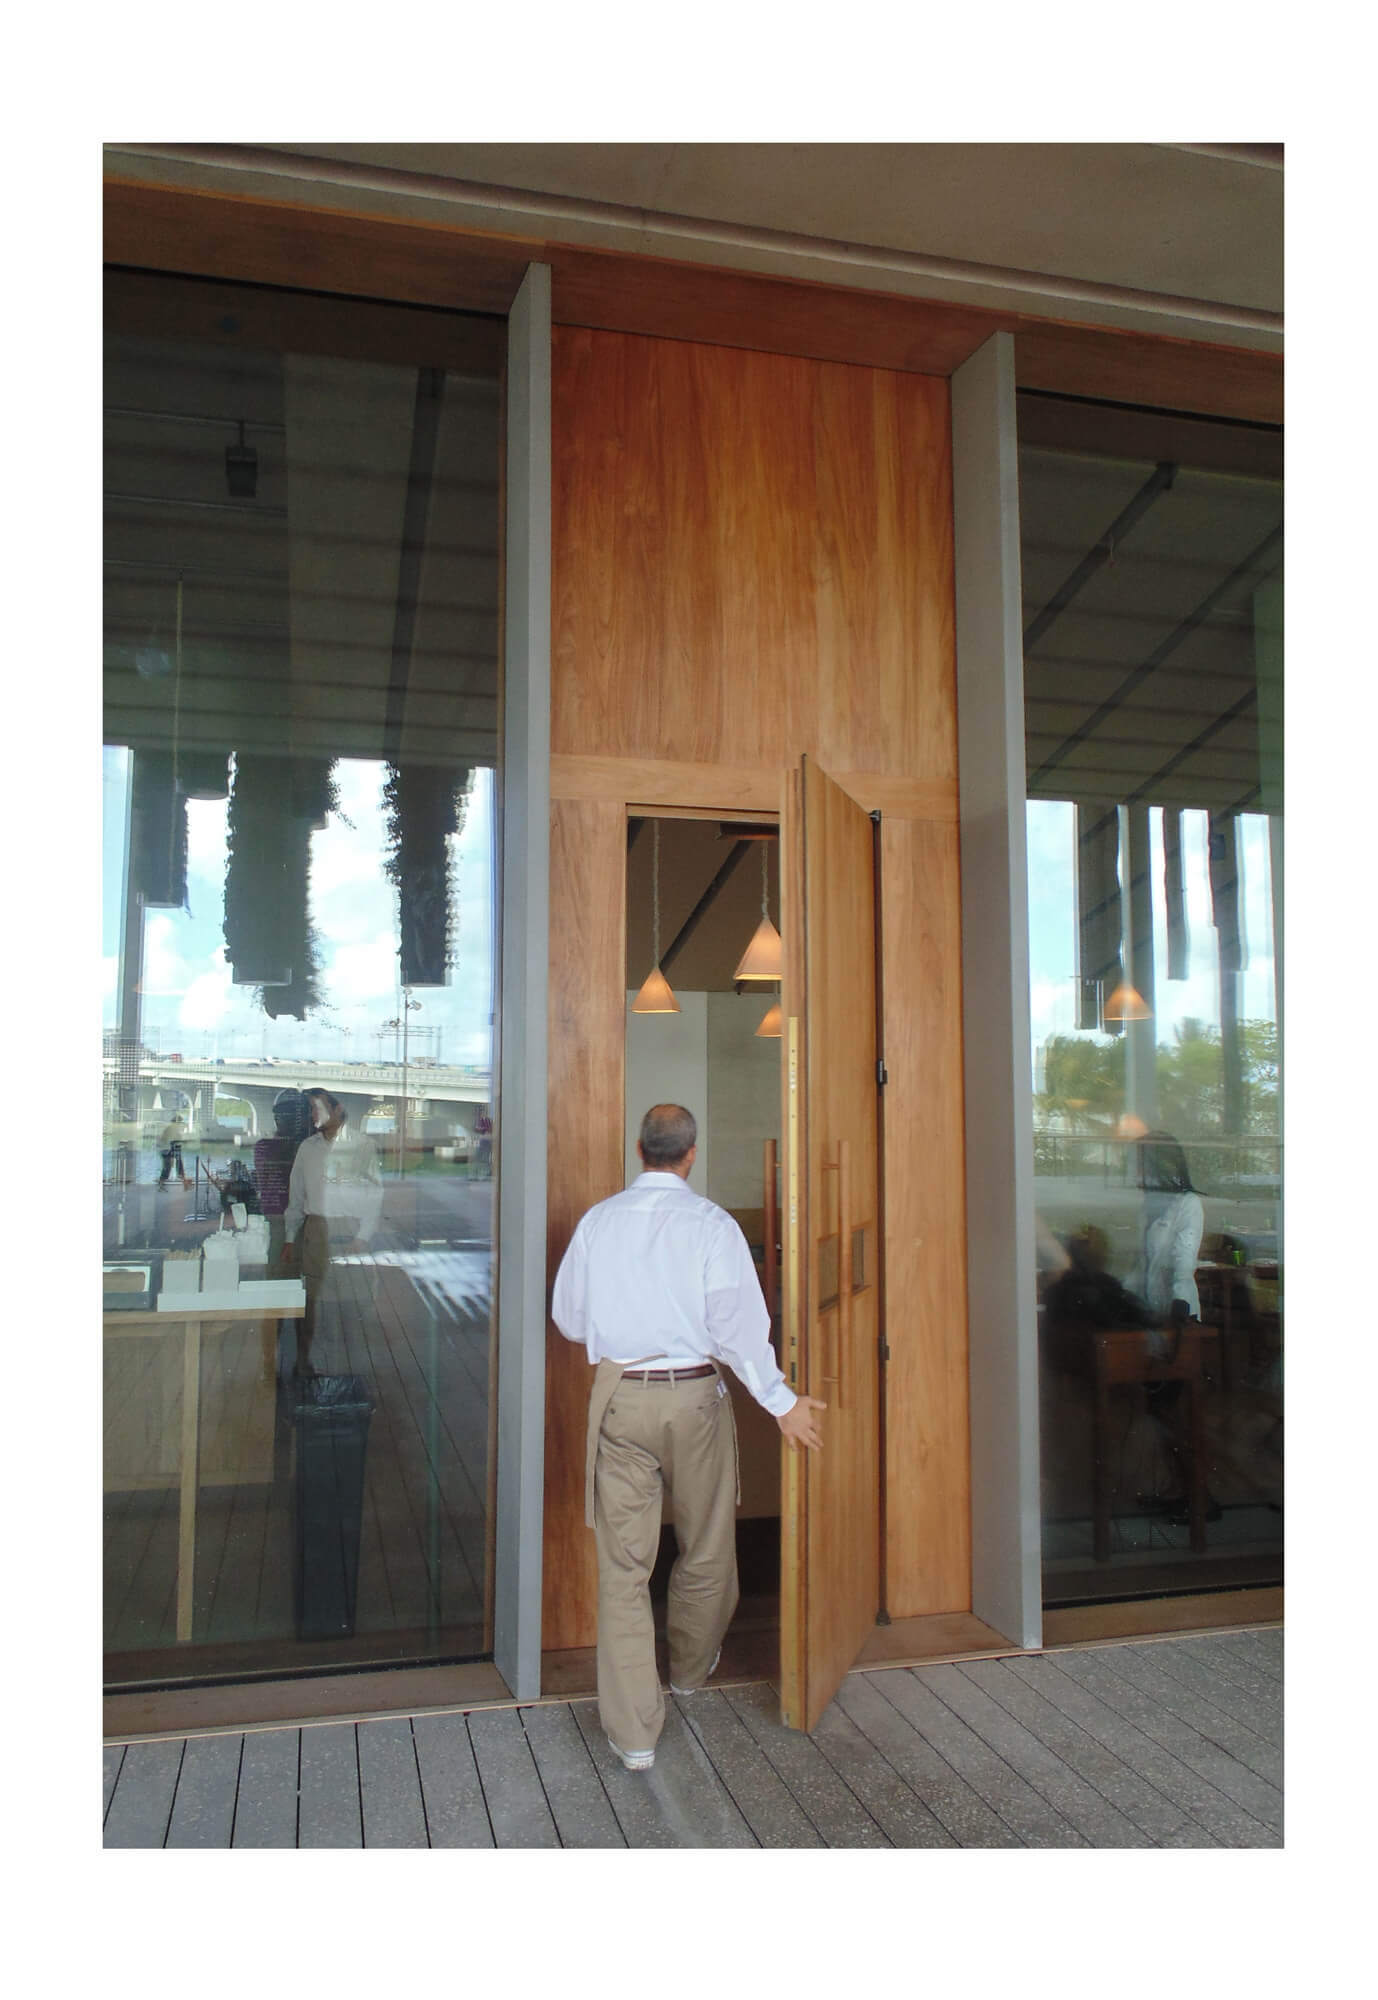 TEAK ENTRY DOOR TO RESTAURANT OF THE MIAMI PEREZ ART MUSEUM.